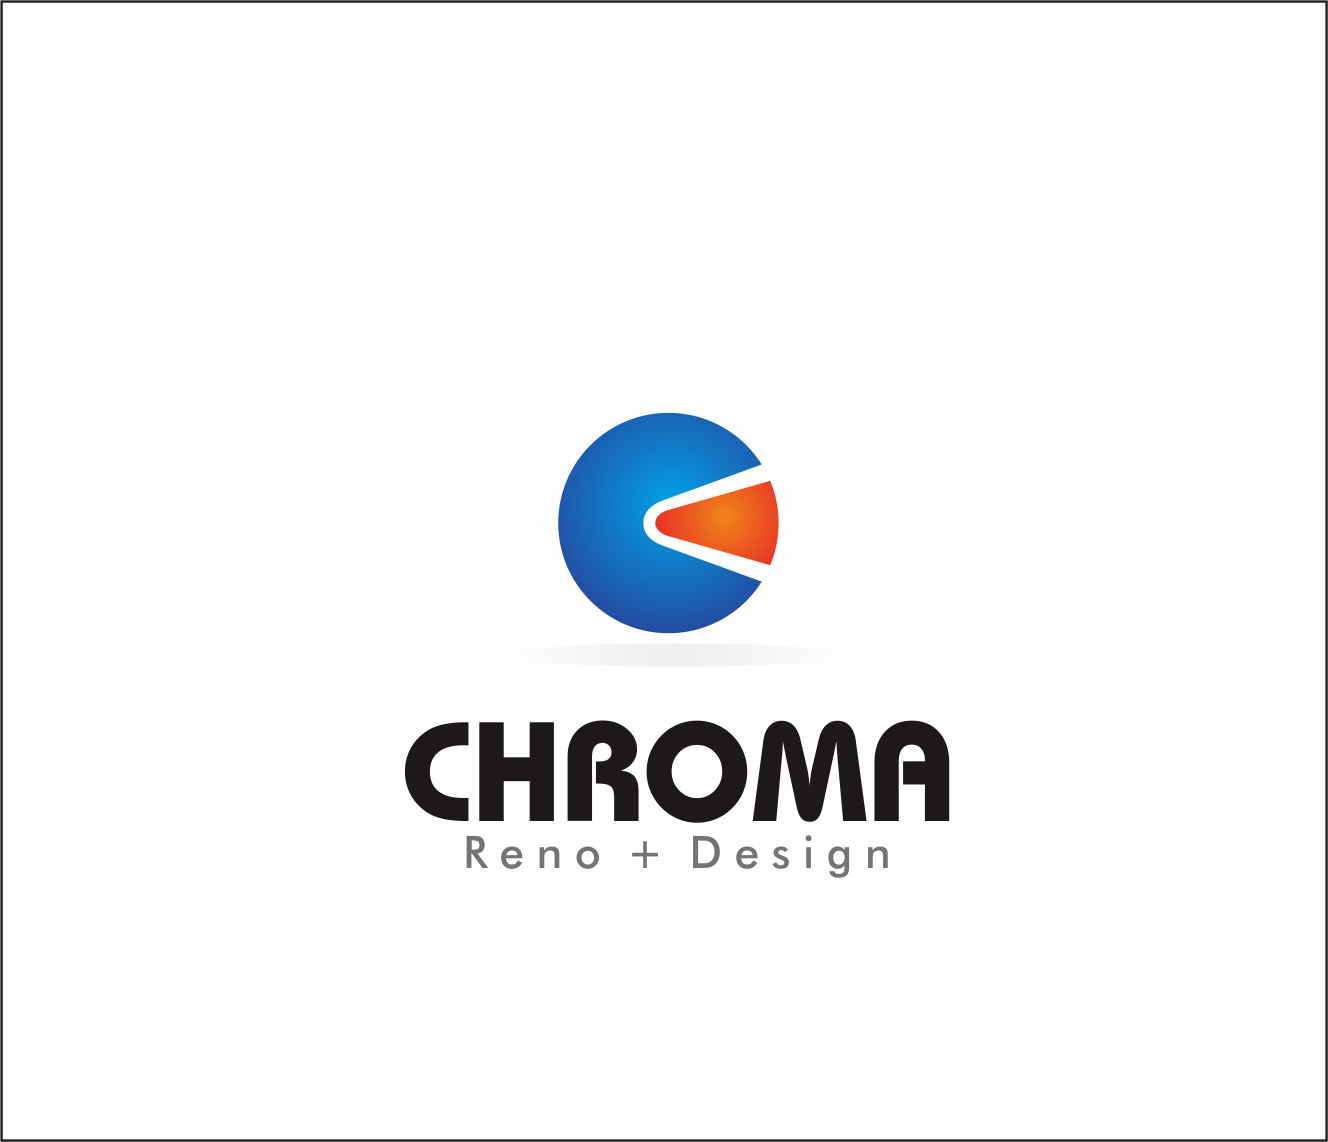 Logo Design by Armada Jamaluddin - Entry No. 201 in the Logo Design Contest Inspiring Logo Design for Chroma Reno+Design.